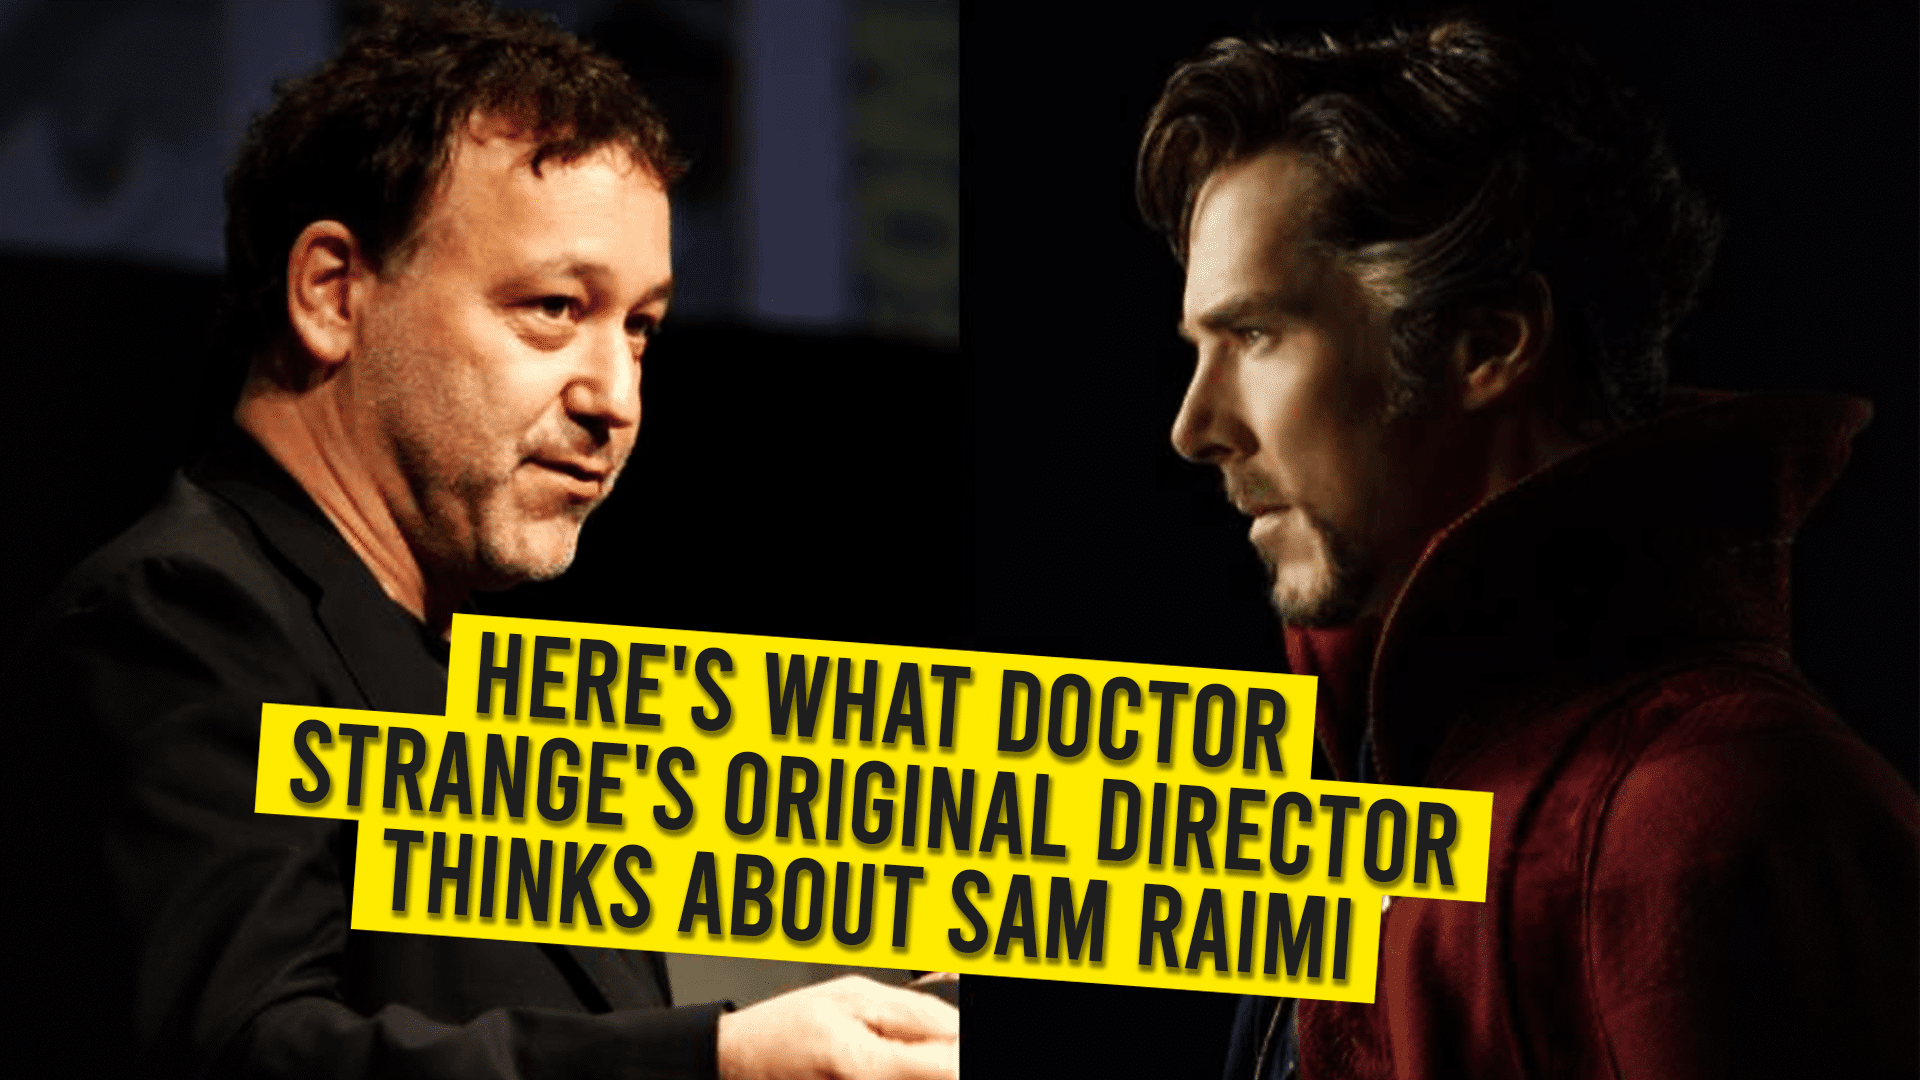 Here's What Doctor Strange's Original Director Thinks About Sam Raimi